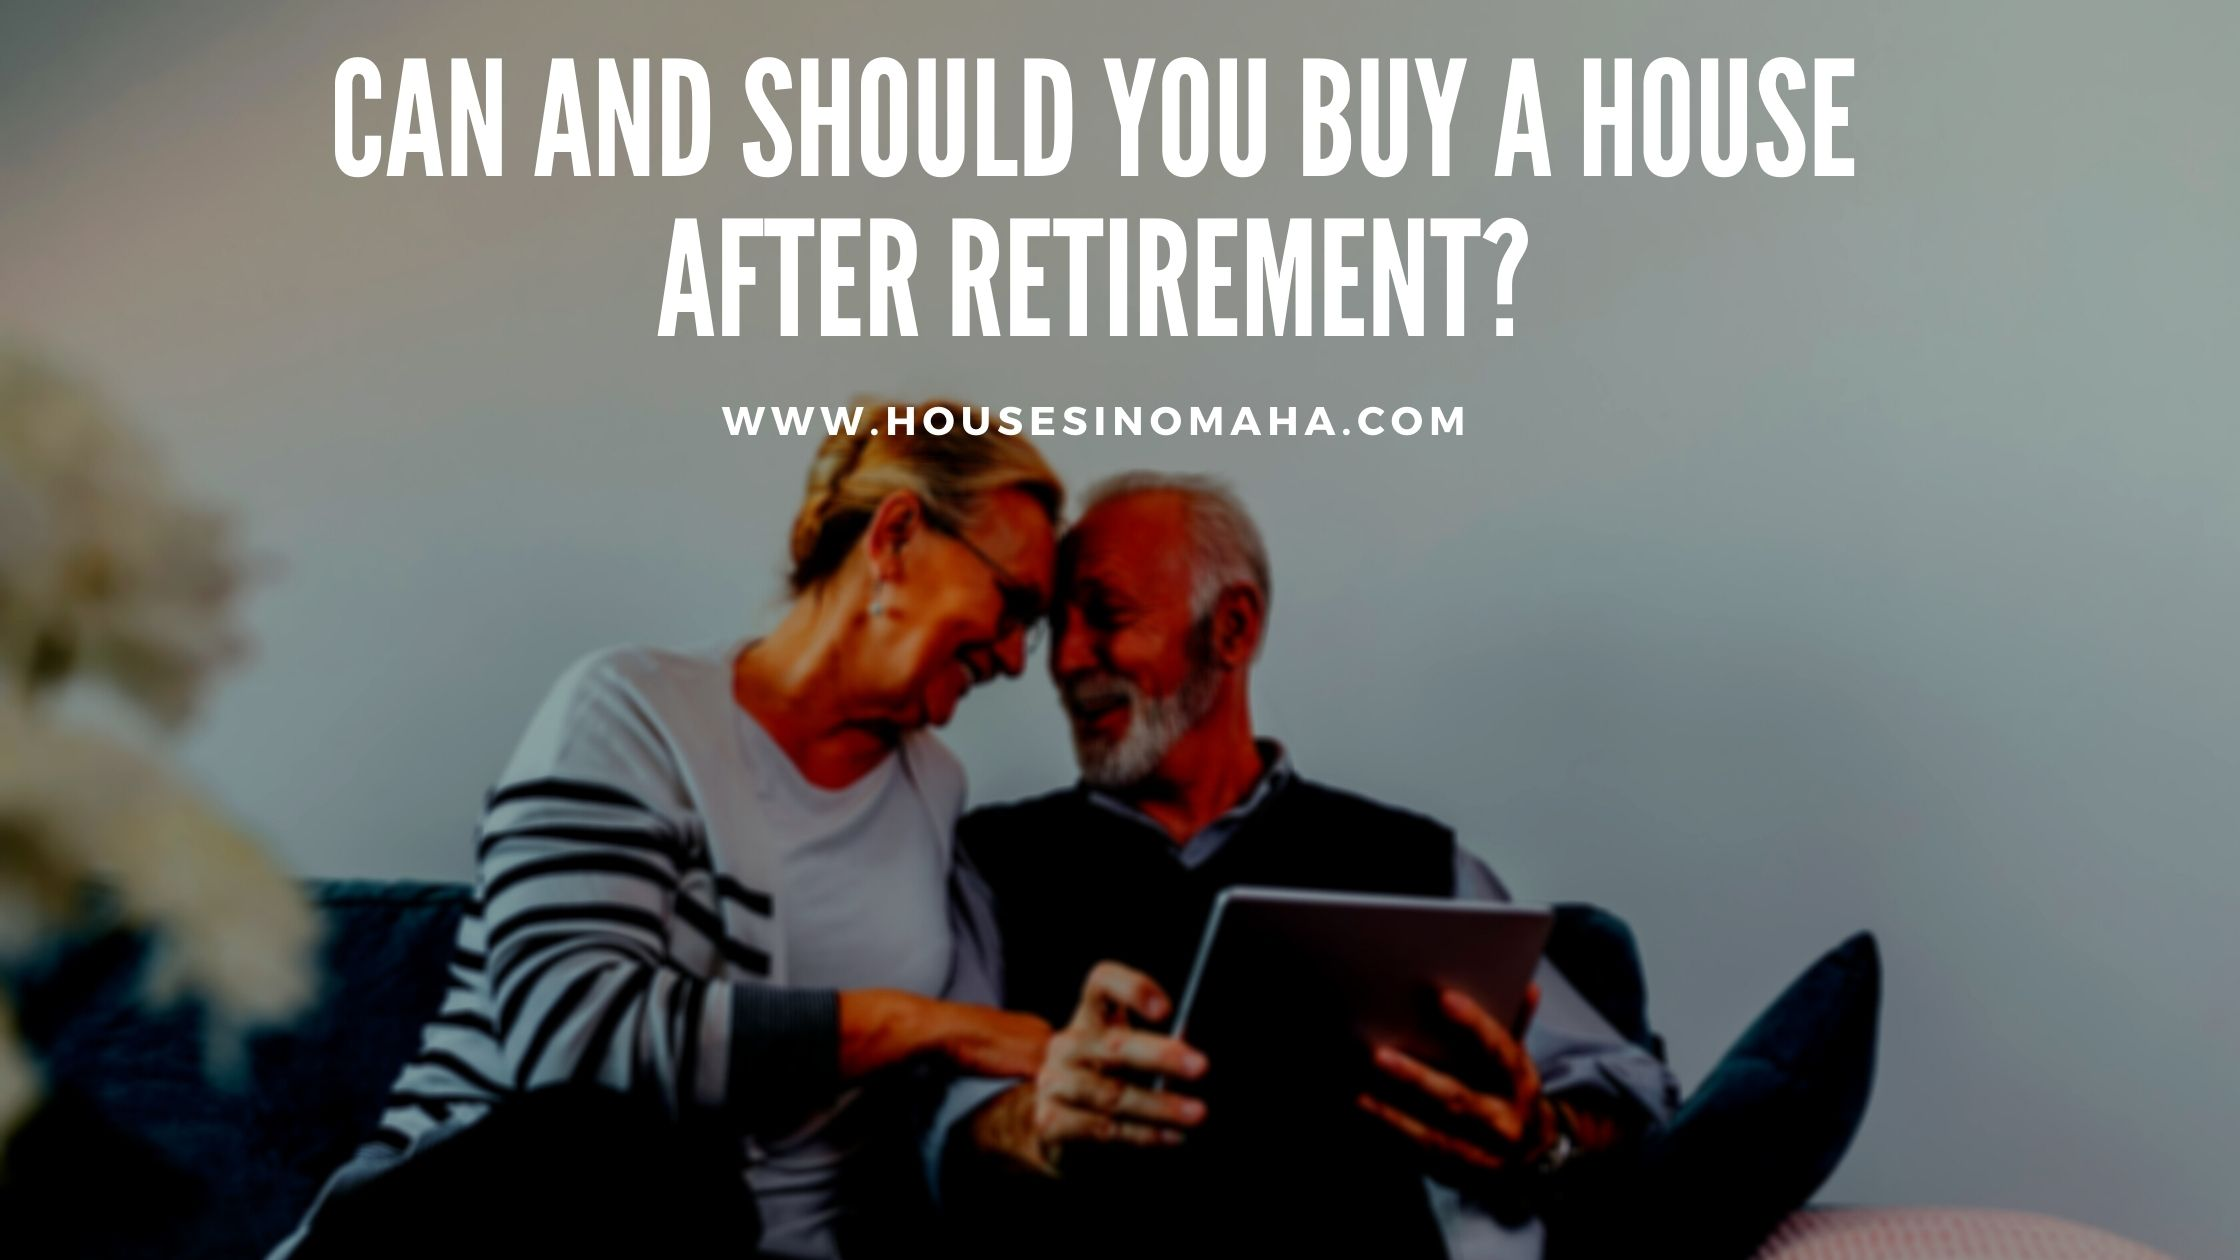 Can and Should You Buy a House After Retirement?